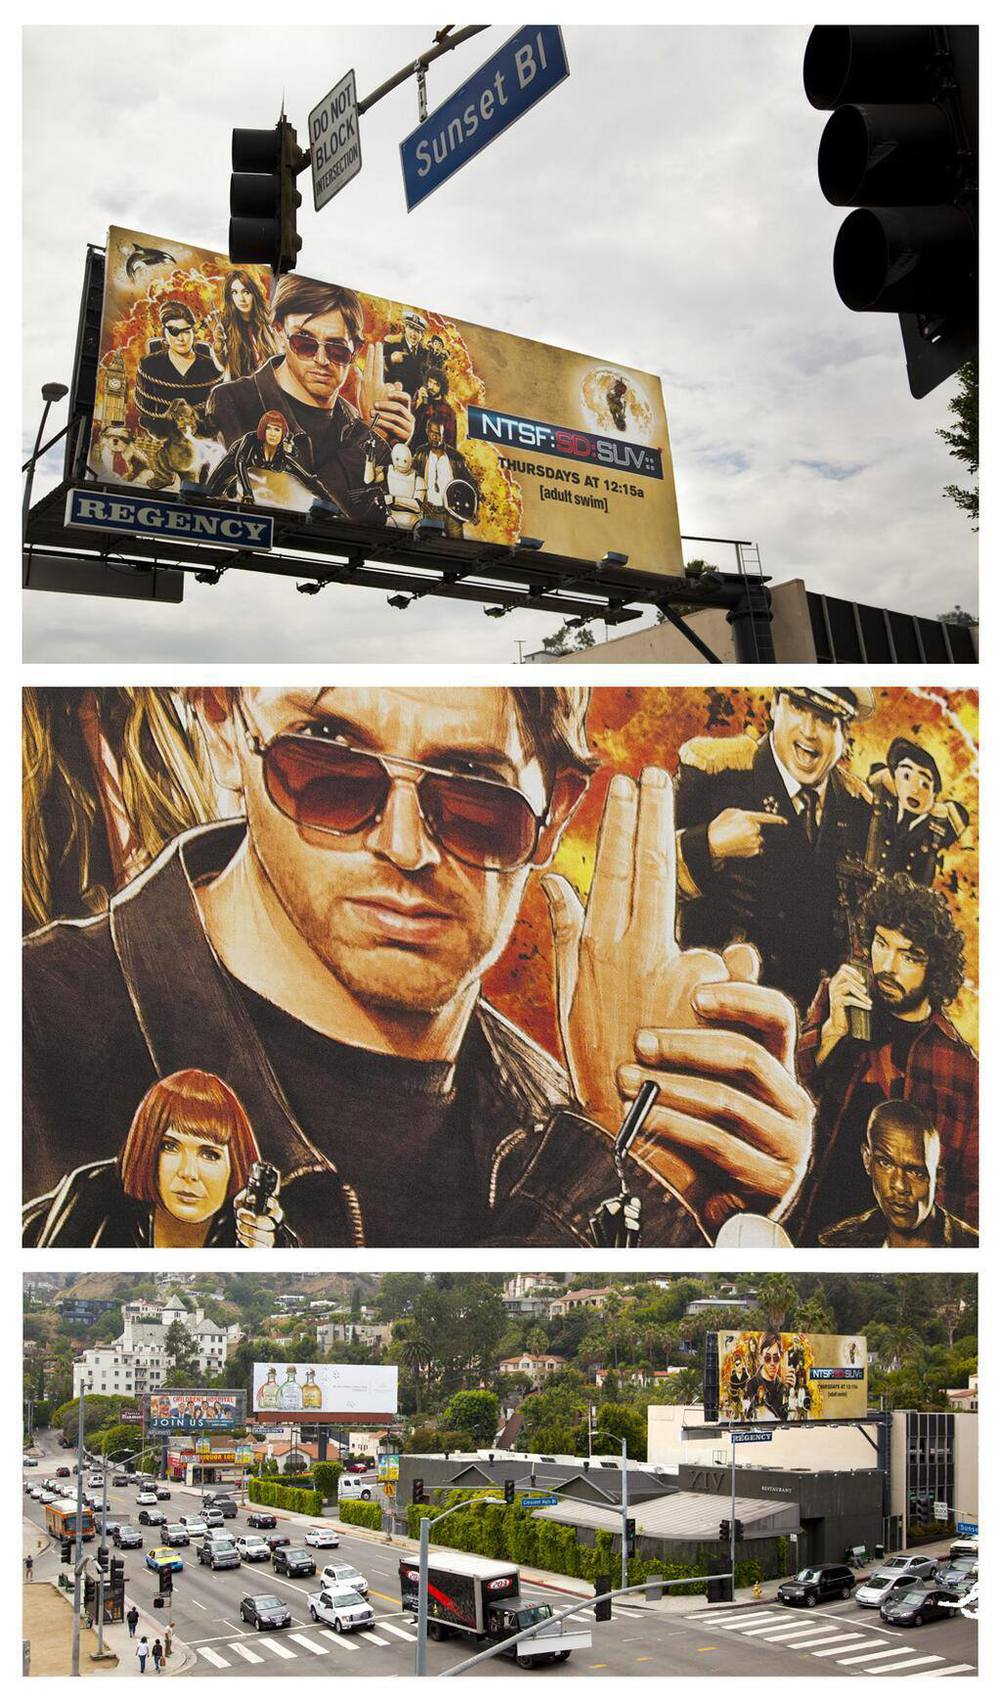 On Sunset Blvd, Los Angeles.